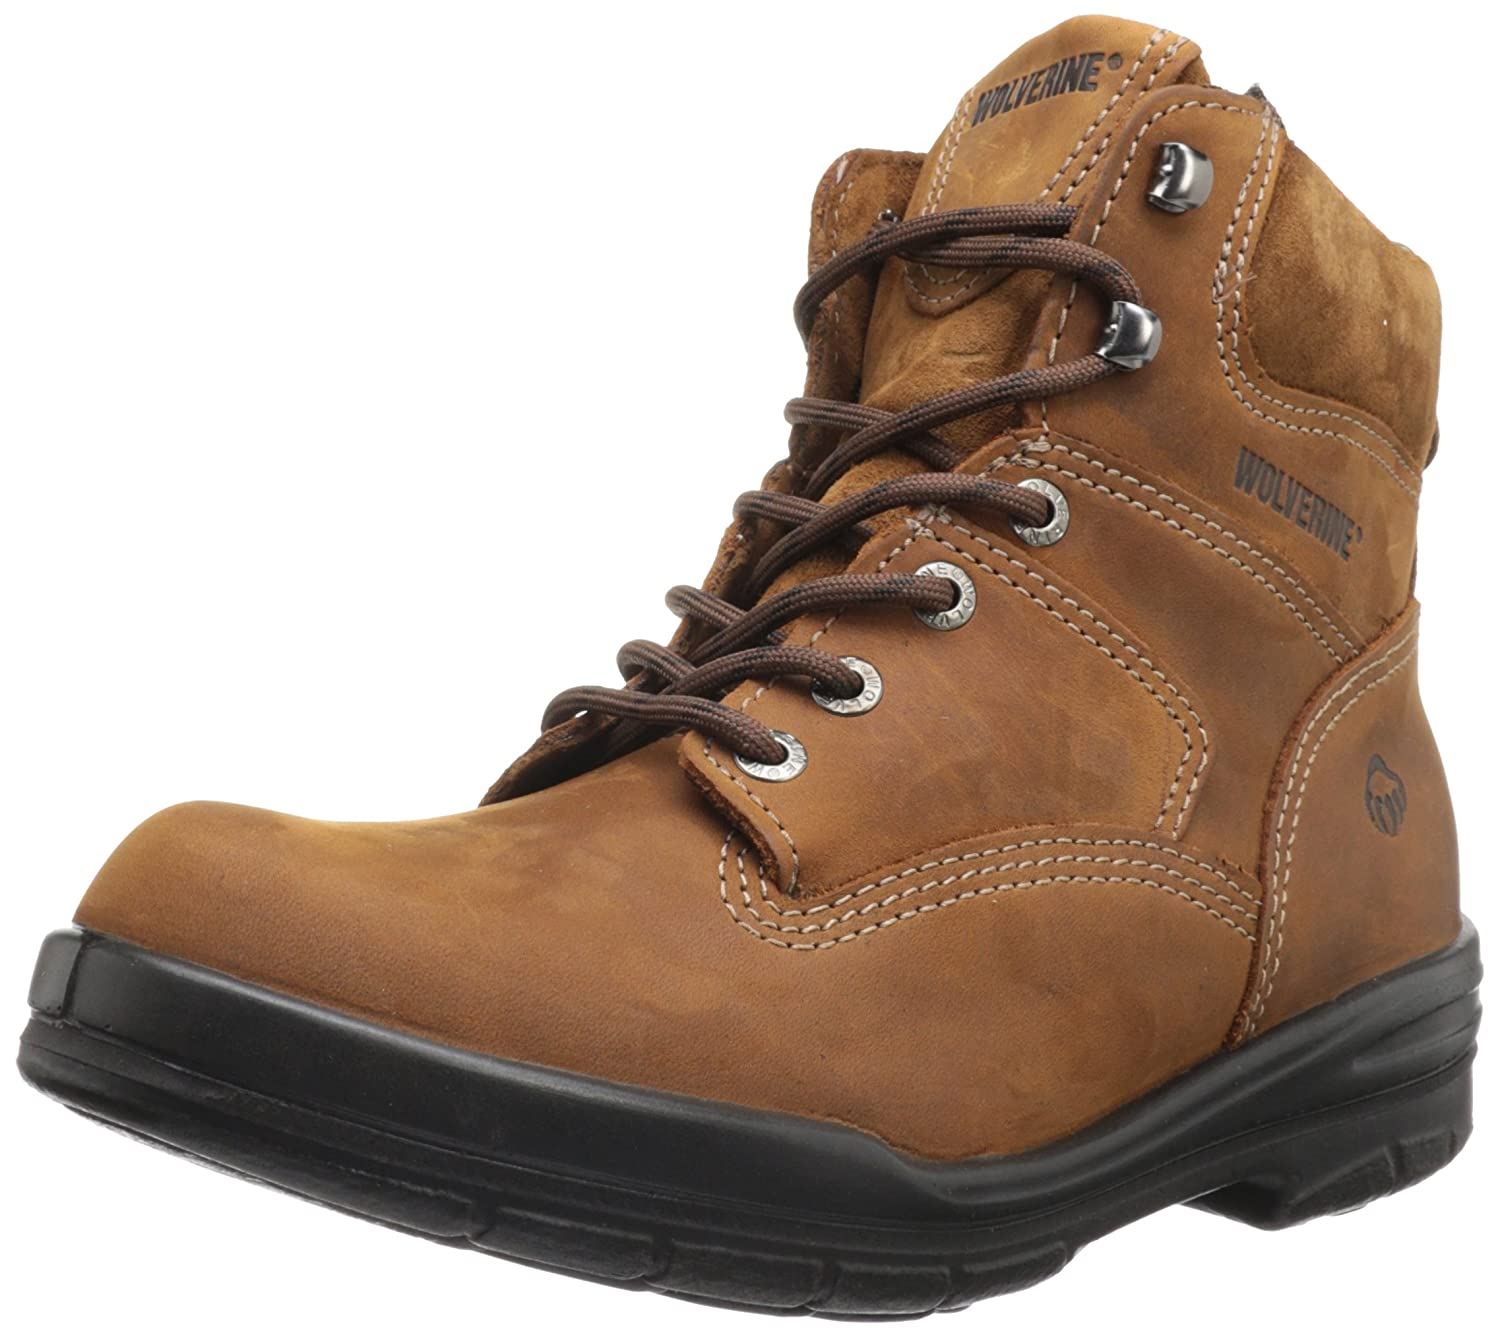 7915ea8245f Wolverine Men's Wolverine Work Boot